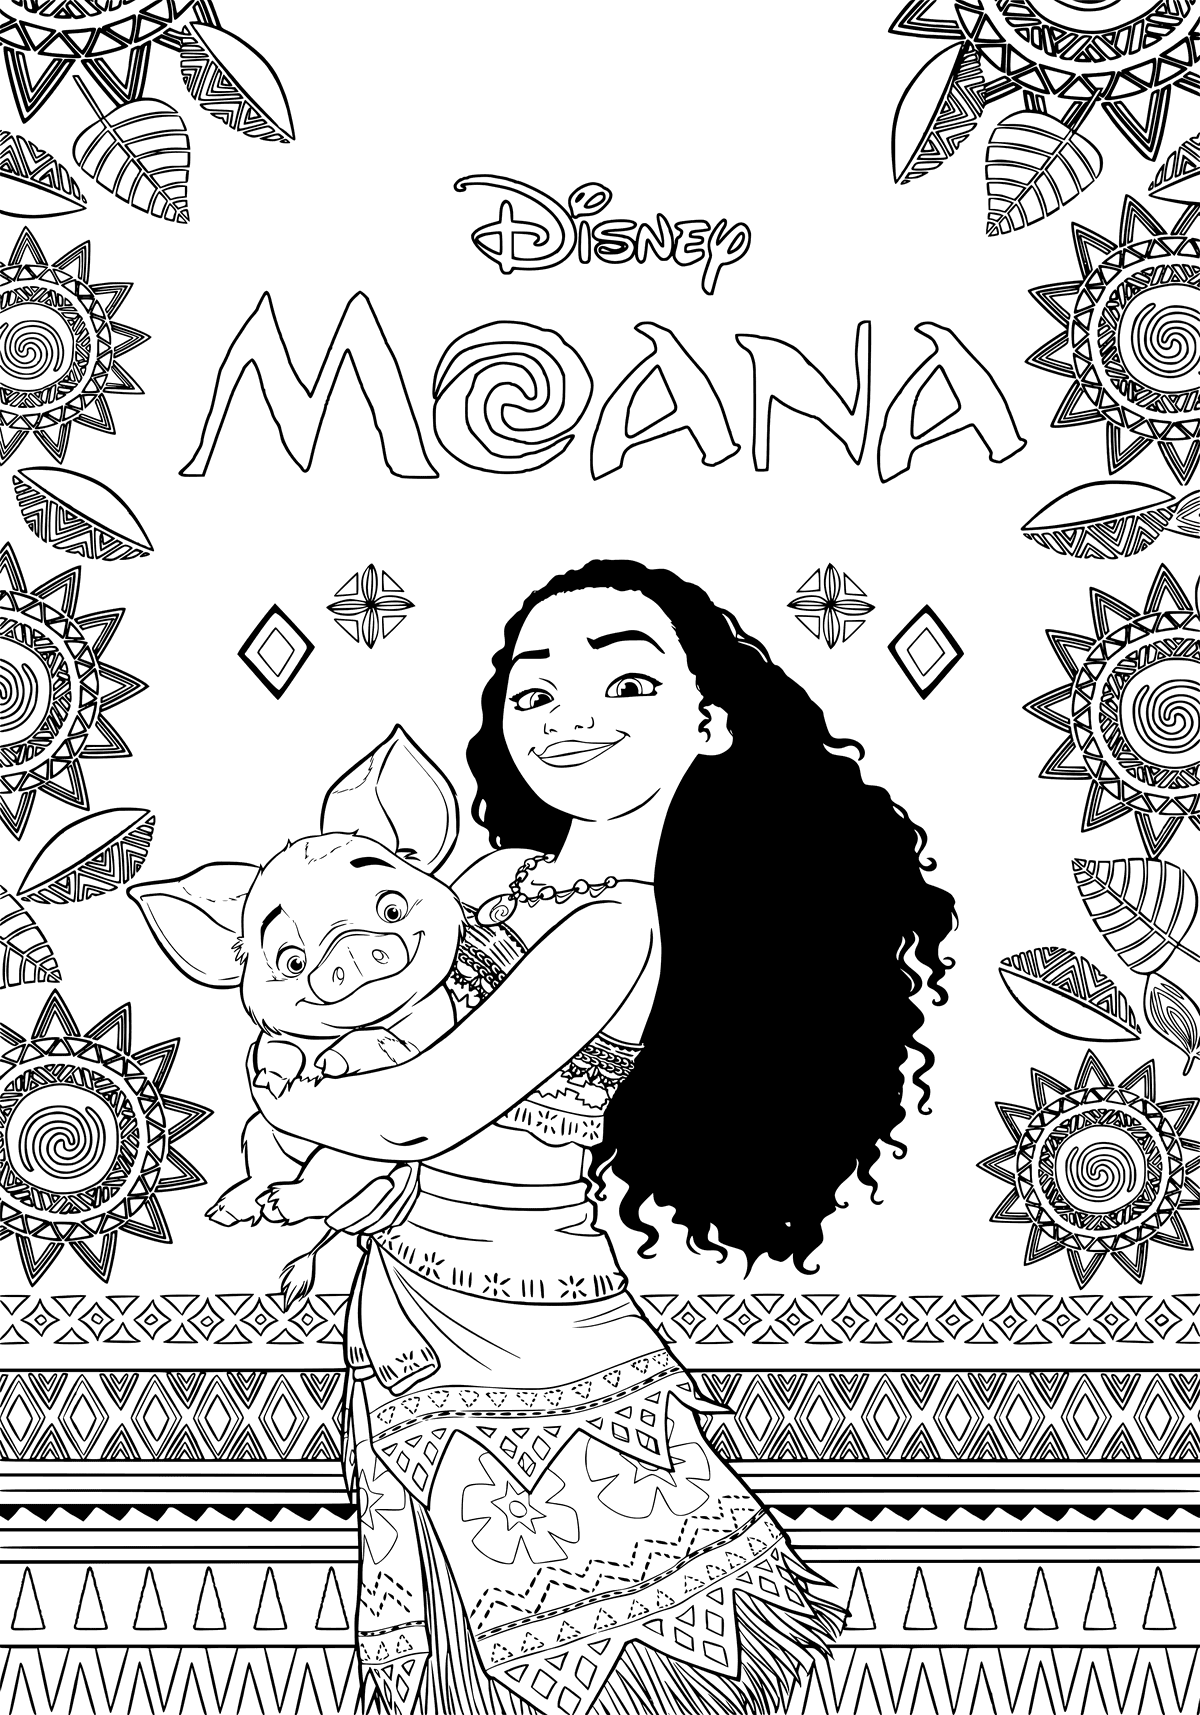 moana coloring pages best coloring pages for kids. Black Bedroom Furniture Sets. Home Design Ideas